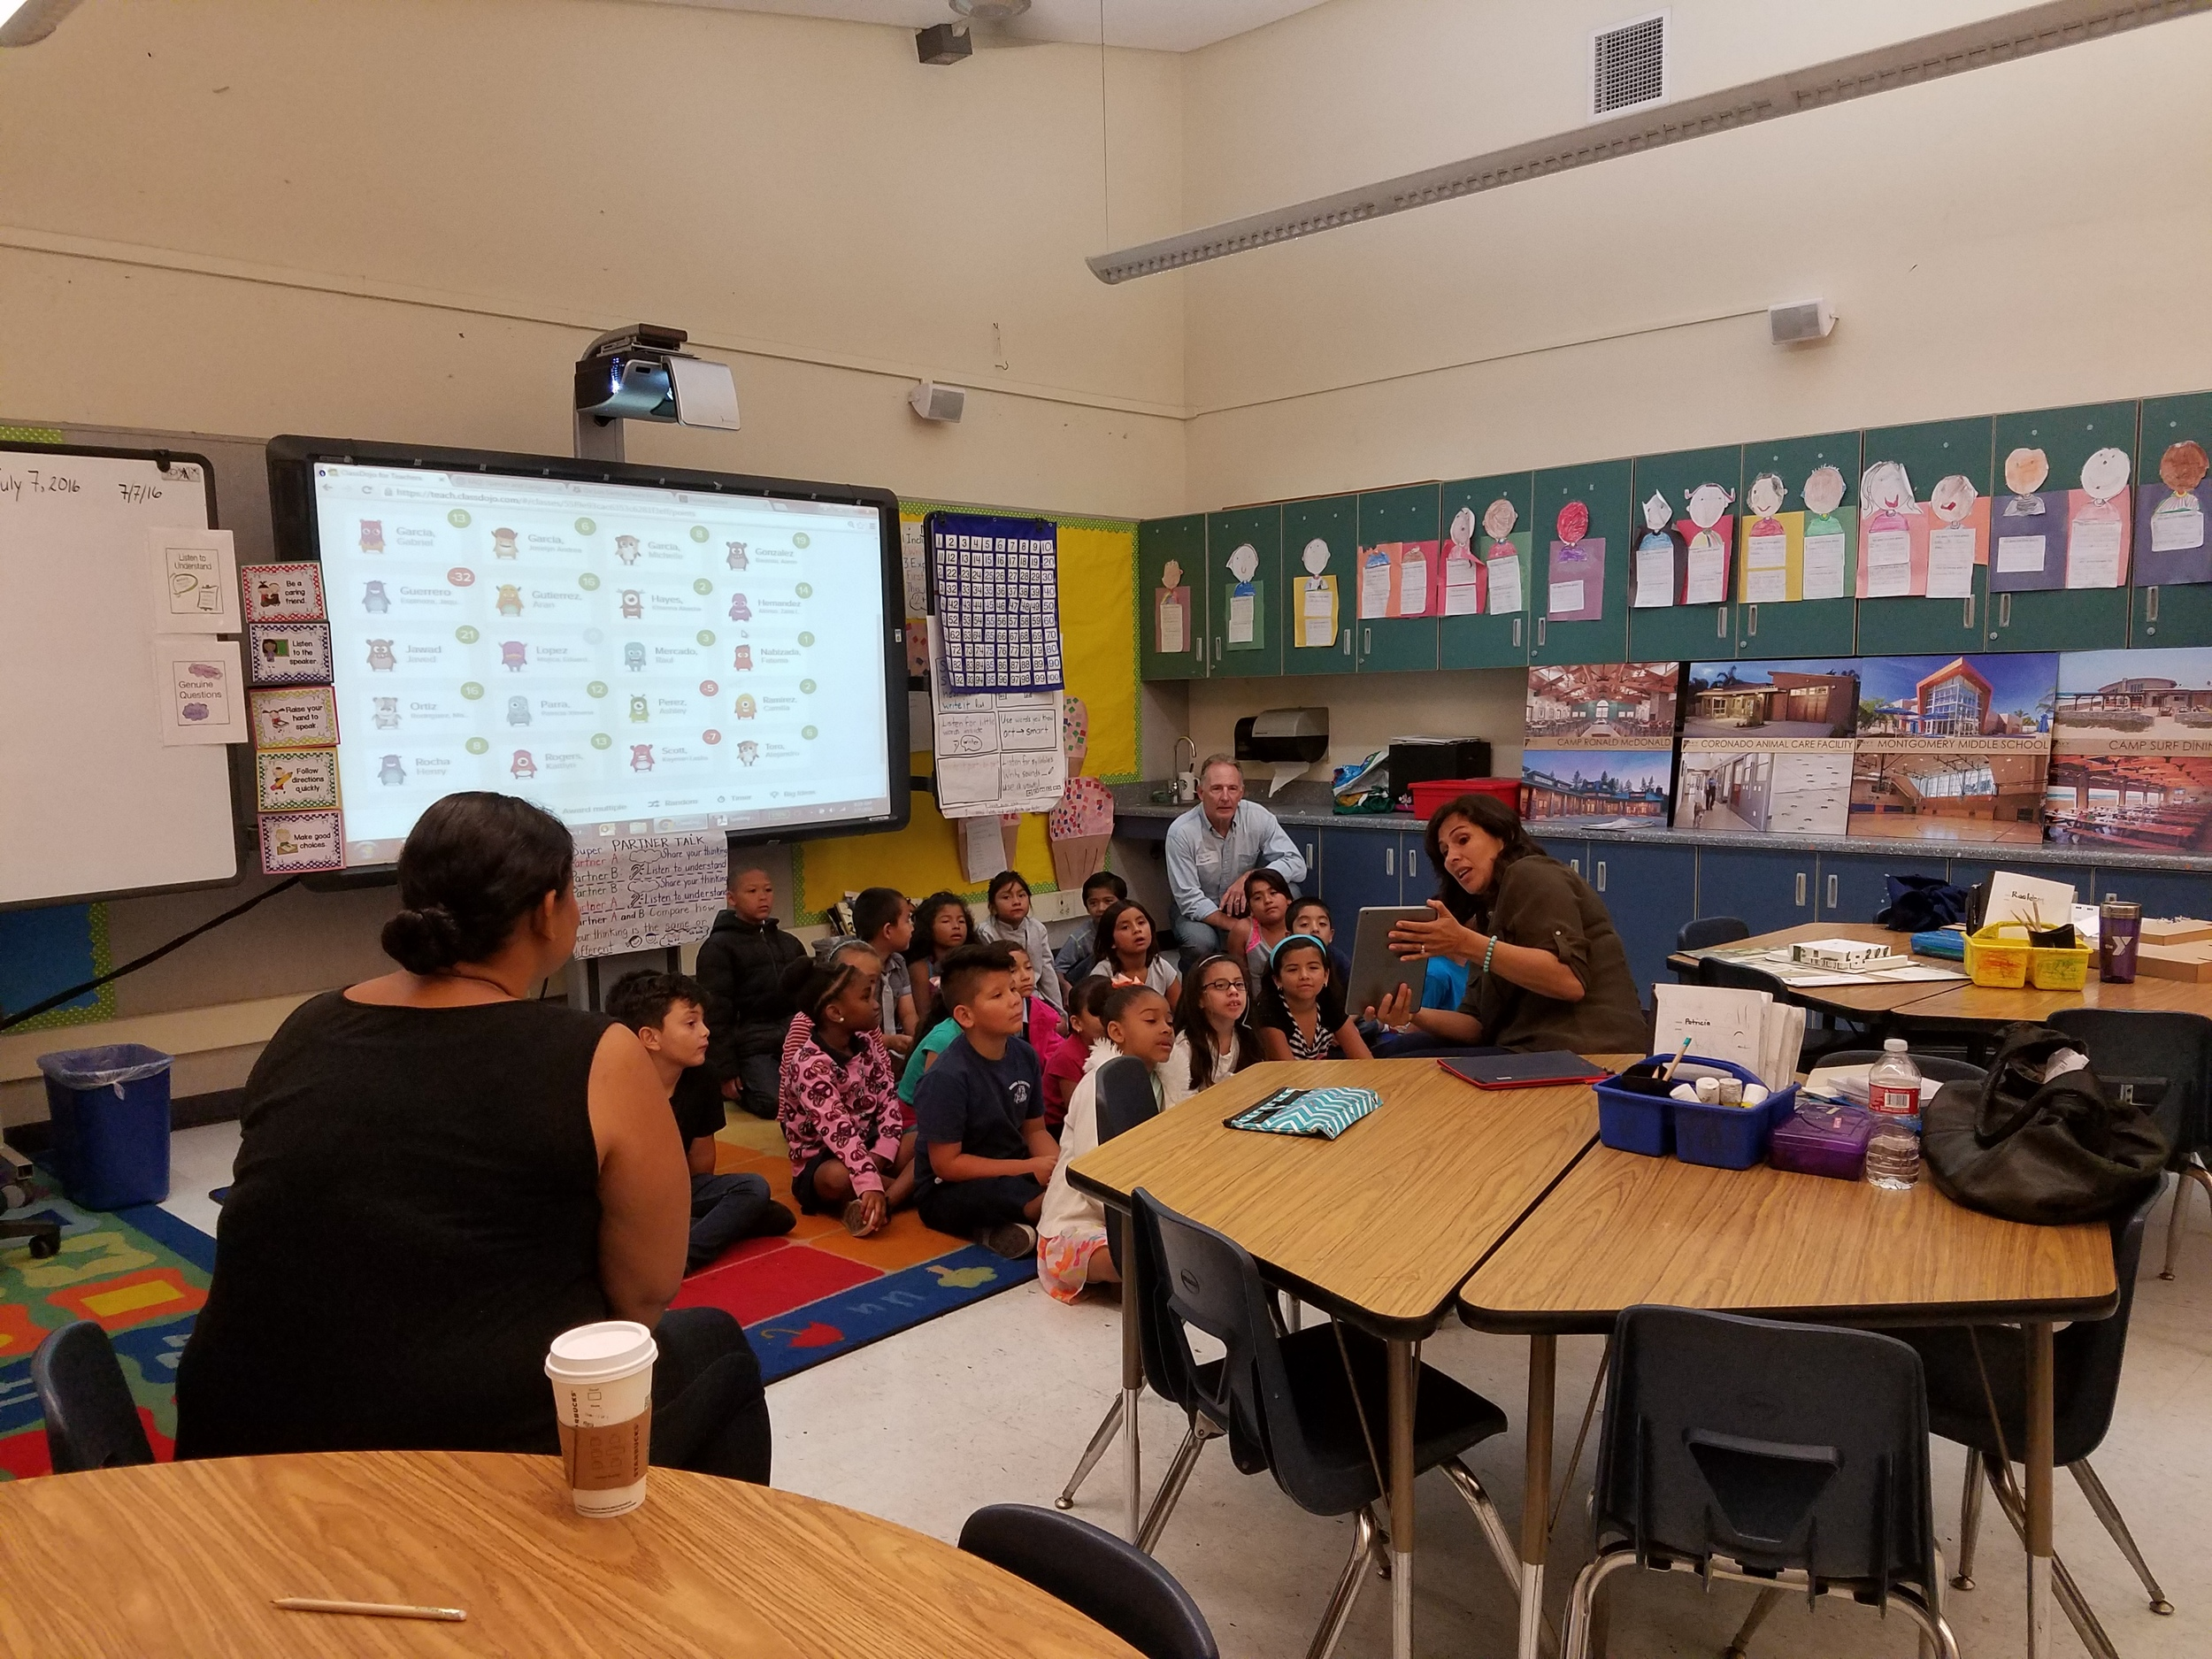 Reyna Ruiz and Ric Davy meet with the class.